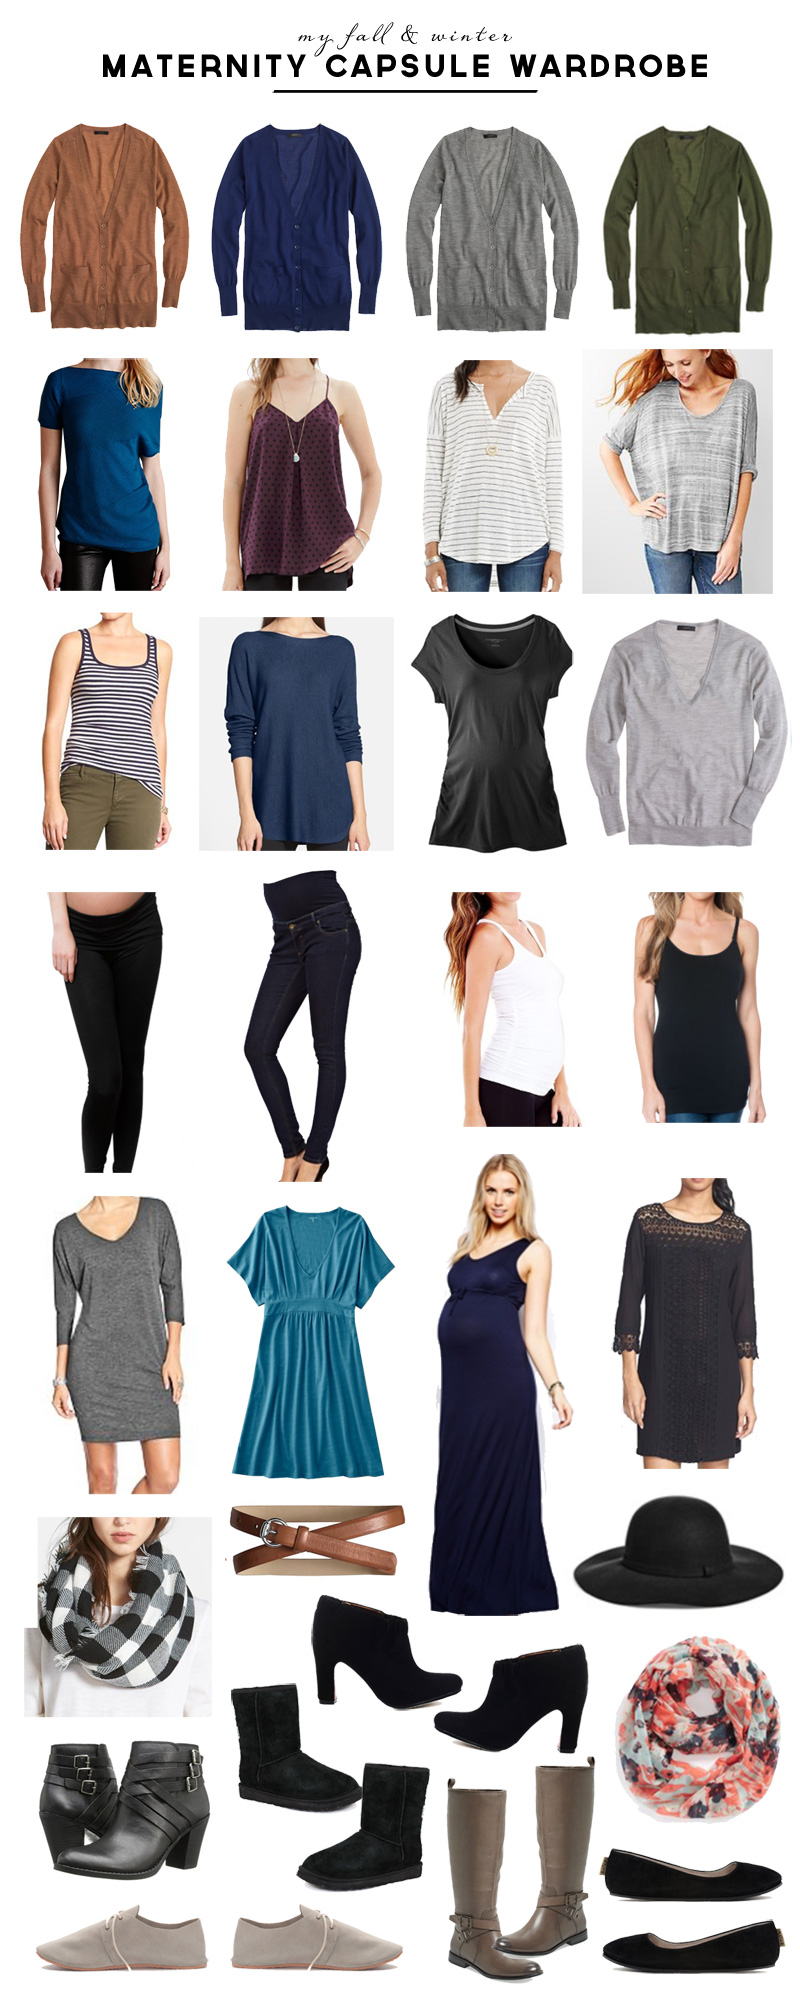 Fall & Winter Maternity Capsule Wardrobe | PepperDesignBlog.com